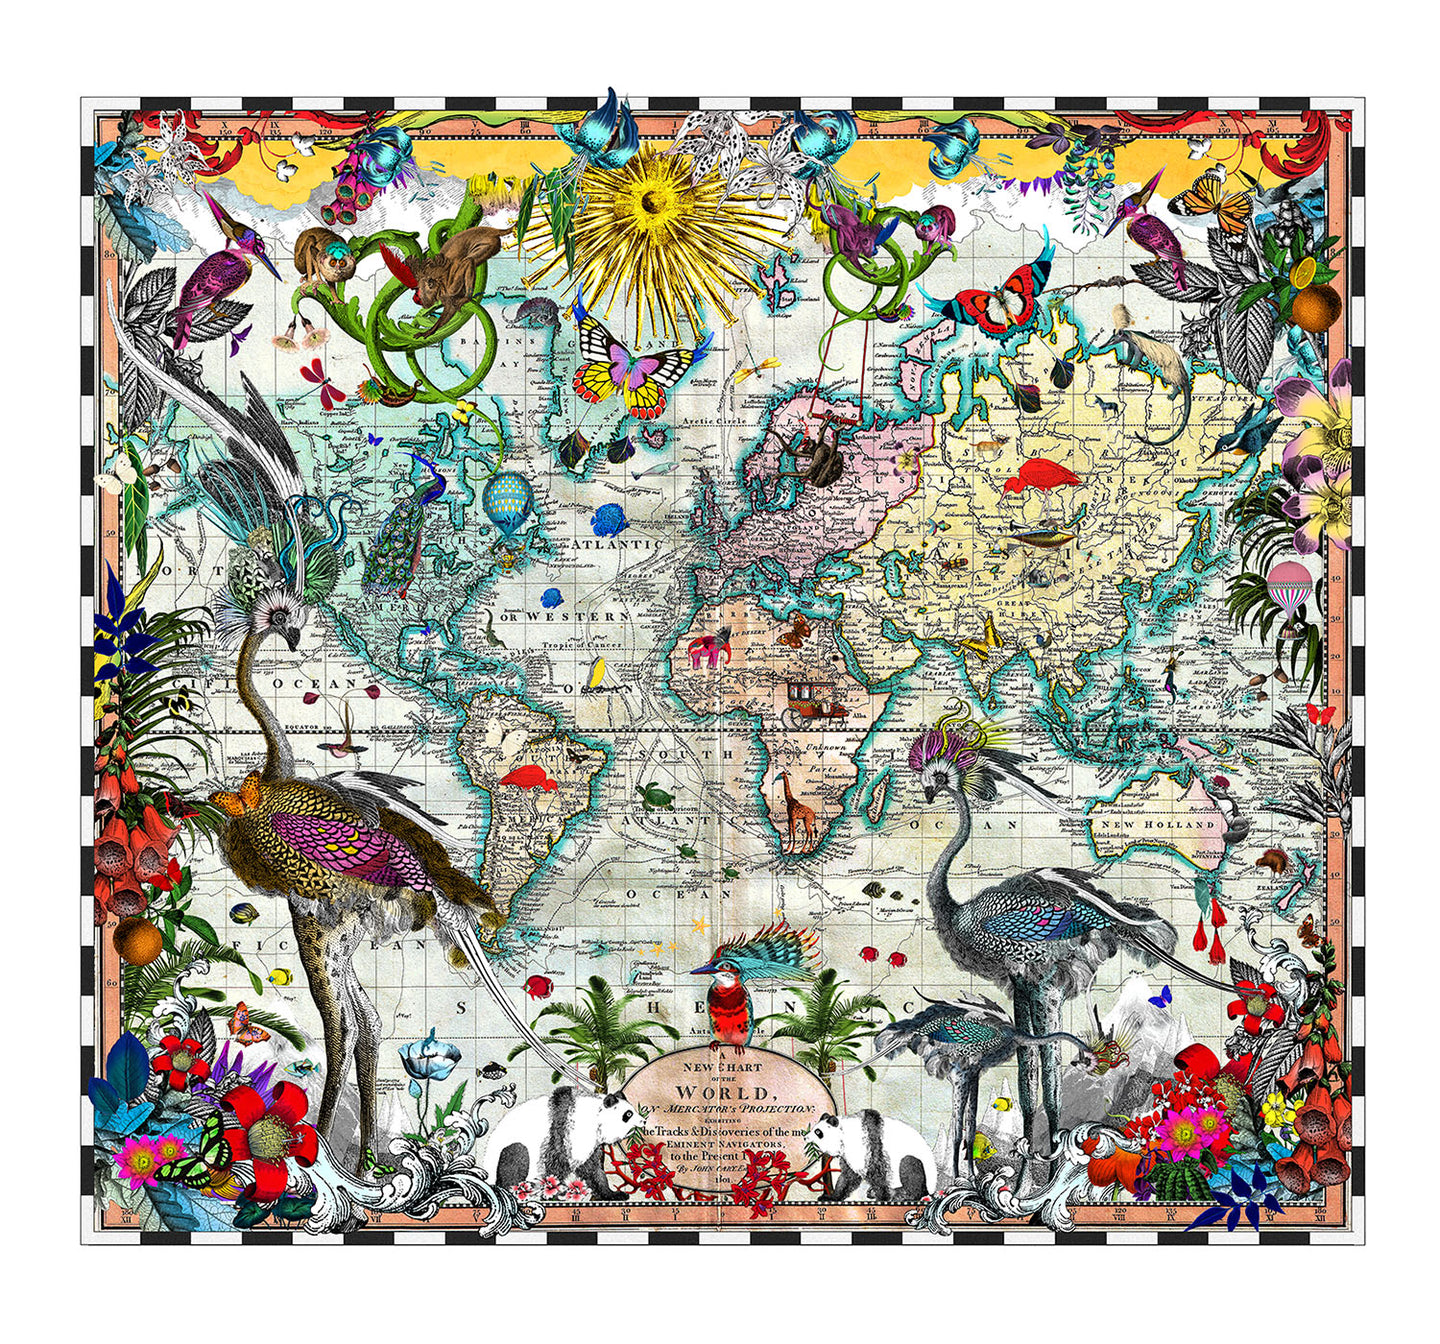 Navigators' Tracks & Discoveries of the World - Art Print - S